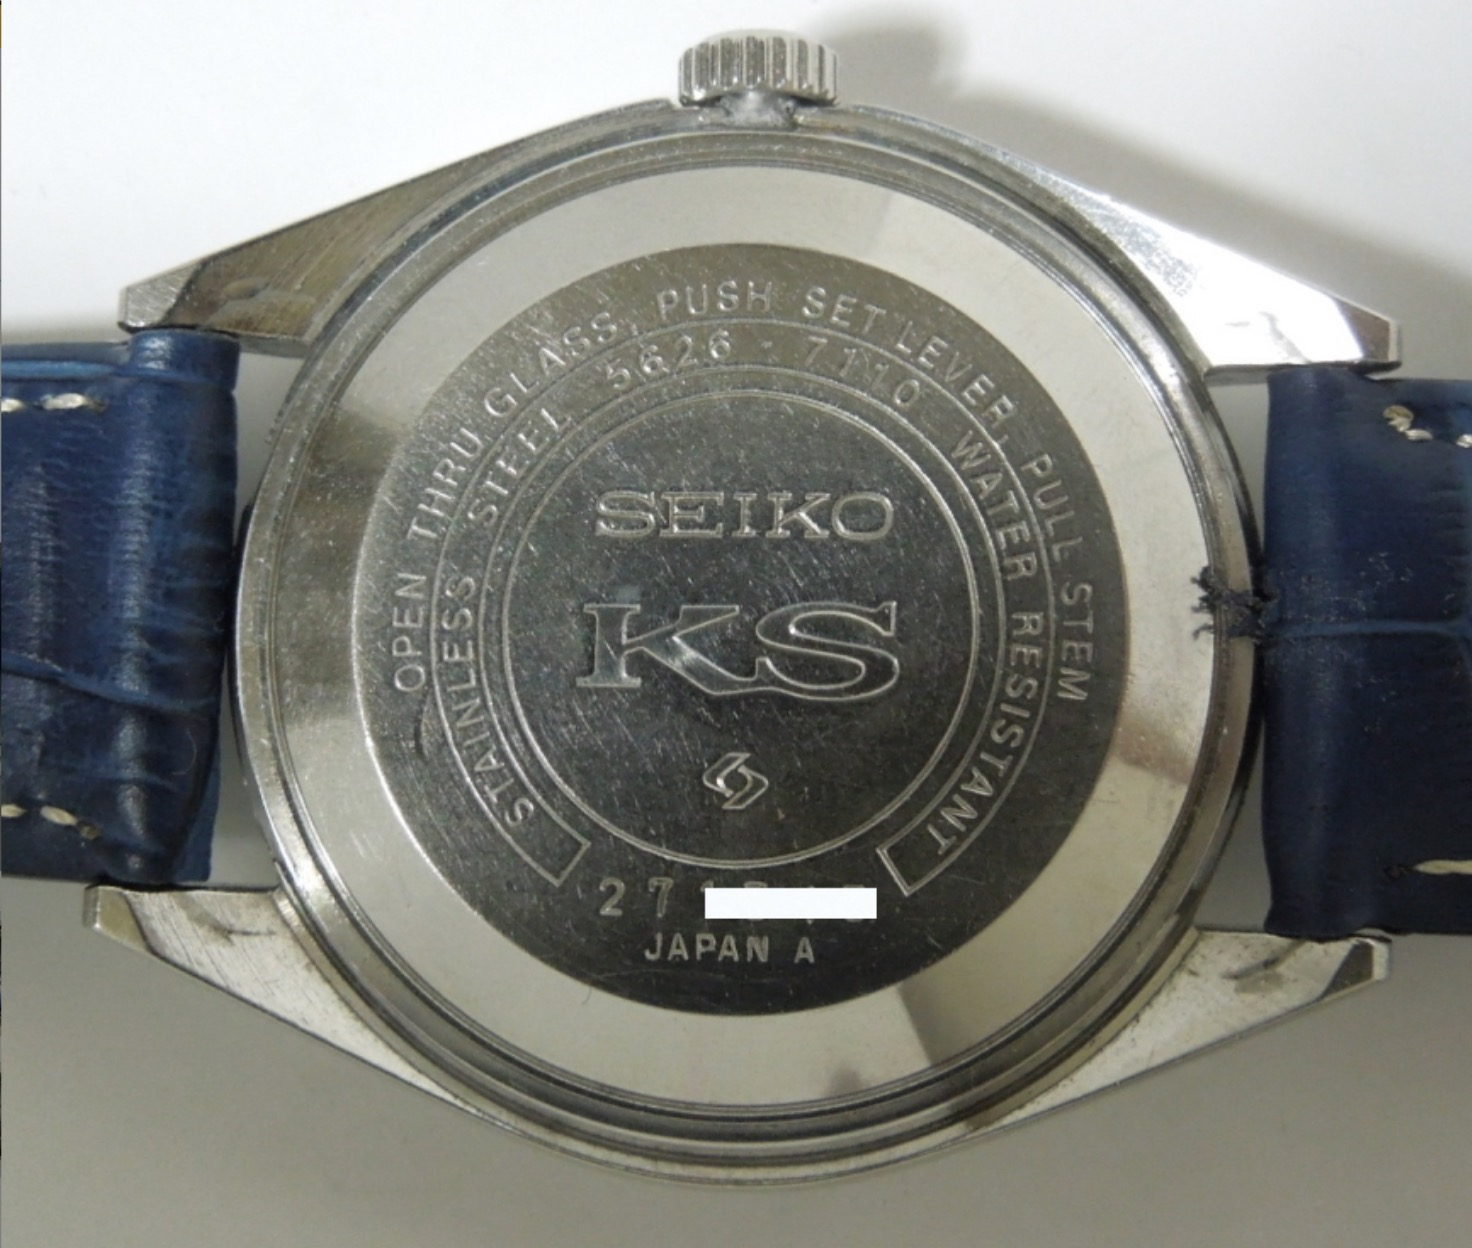 King Seiko 5626-7110 (Sold)